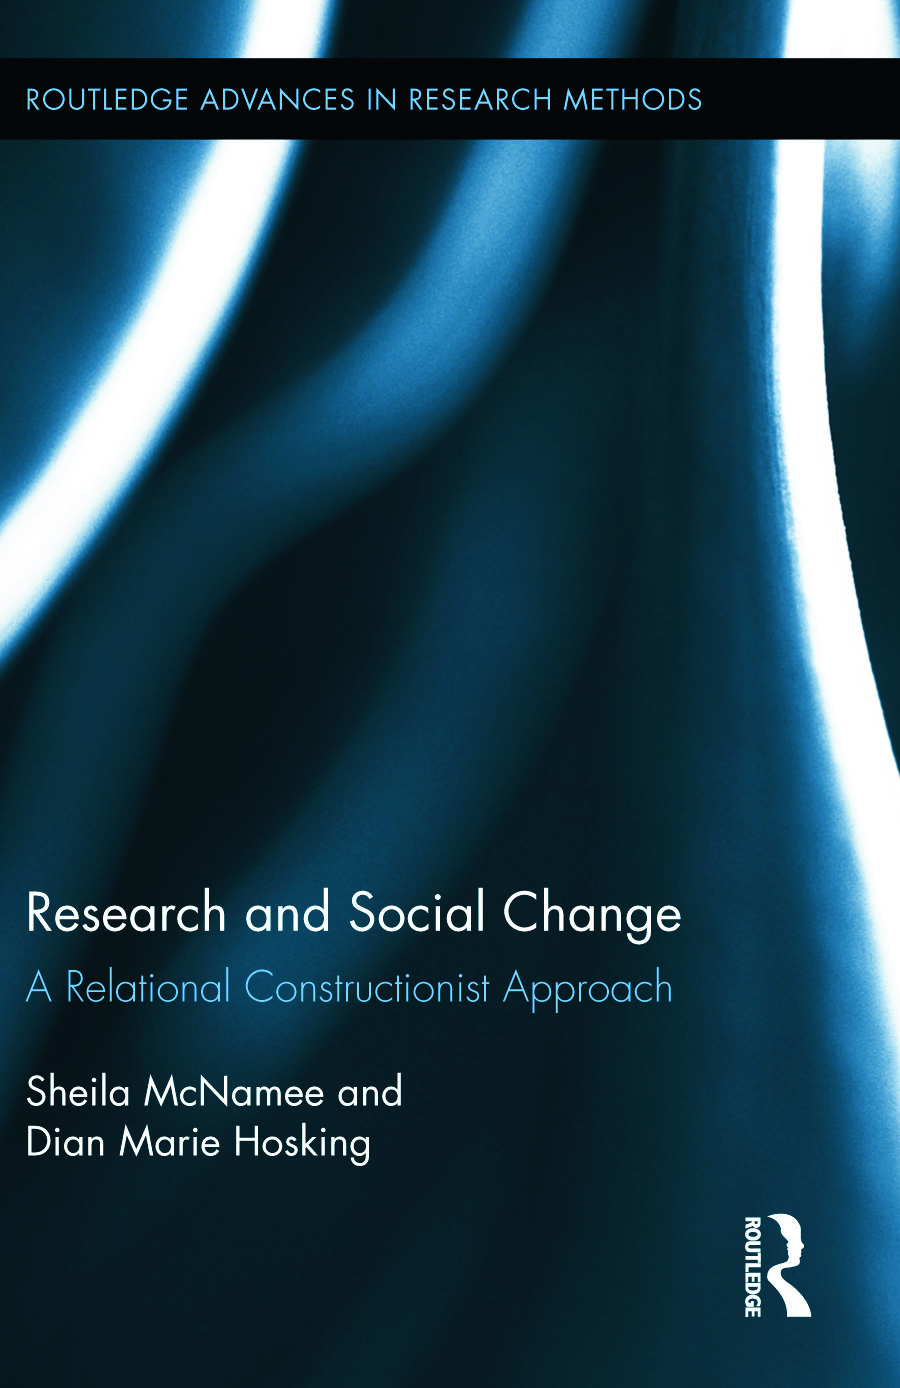 Research and Social Change: A Relational Constructionist Approach book cover